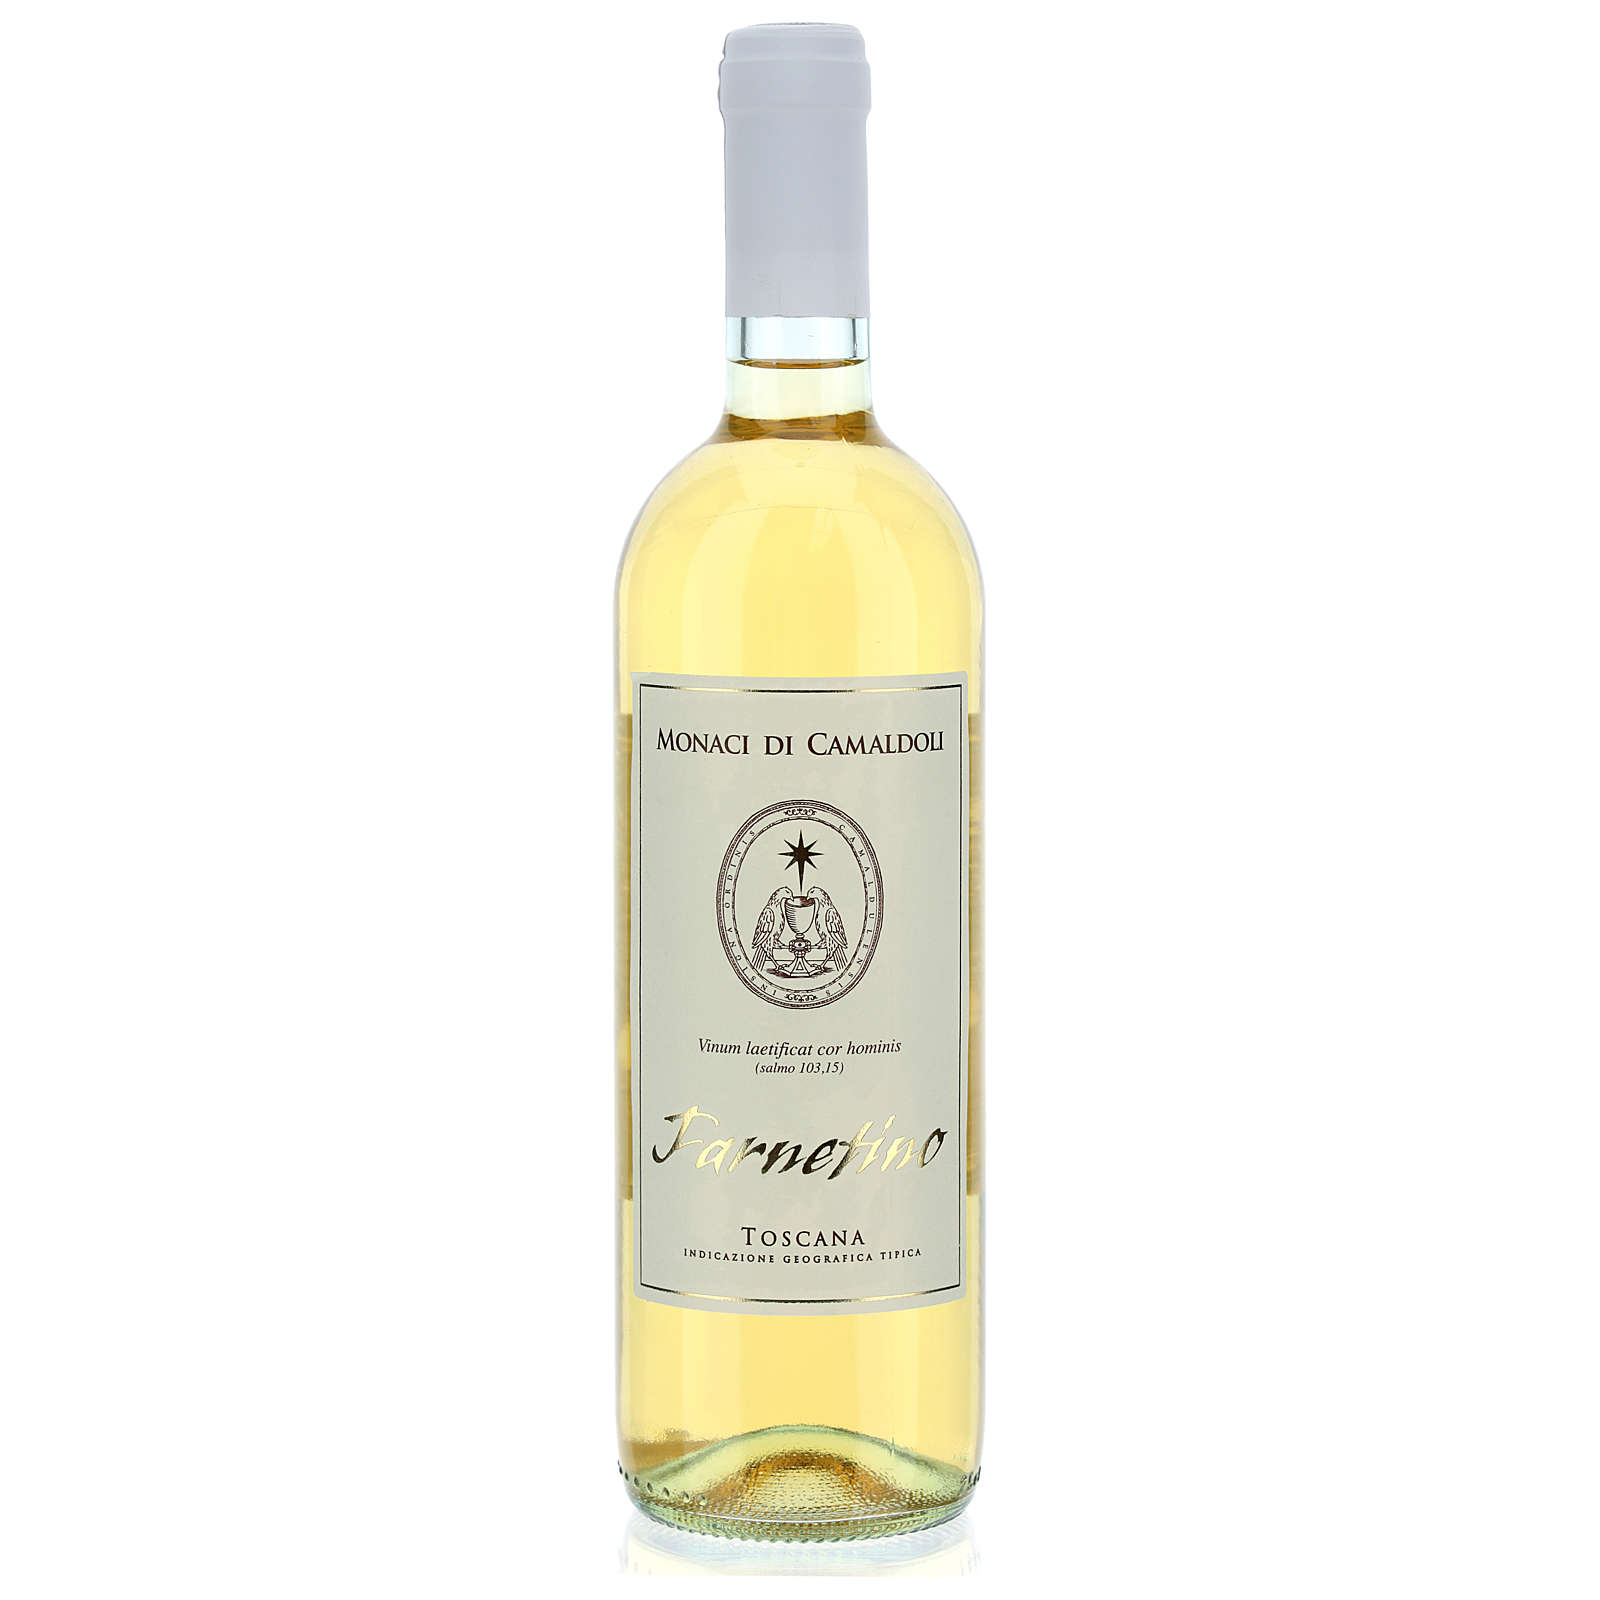 Vin blanc de Toscane Bordotto 750 ml 2015 3